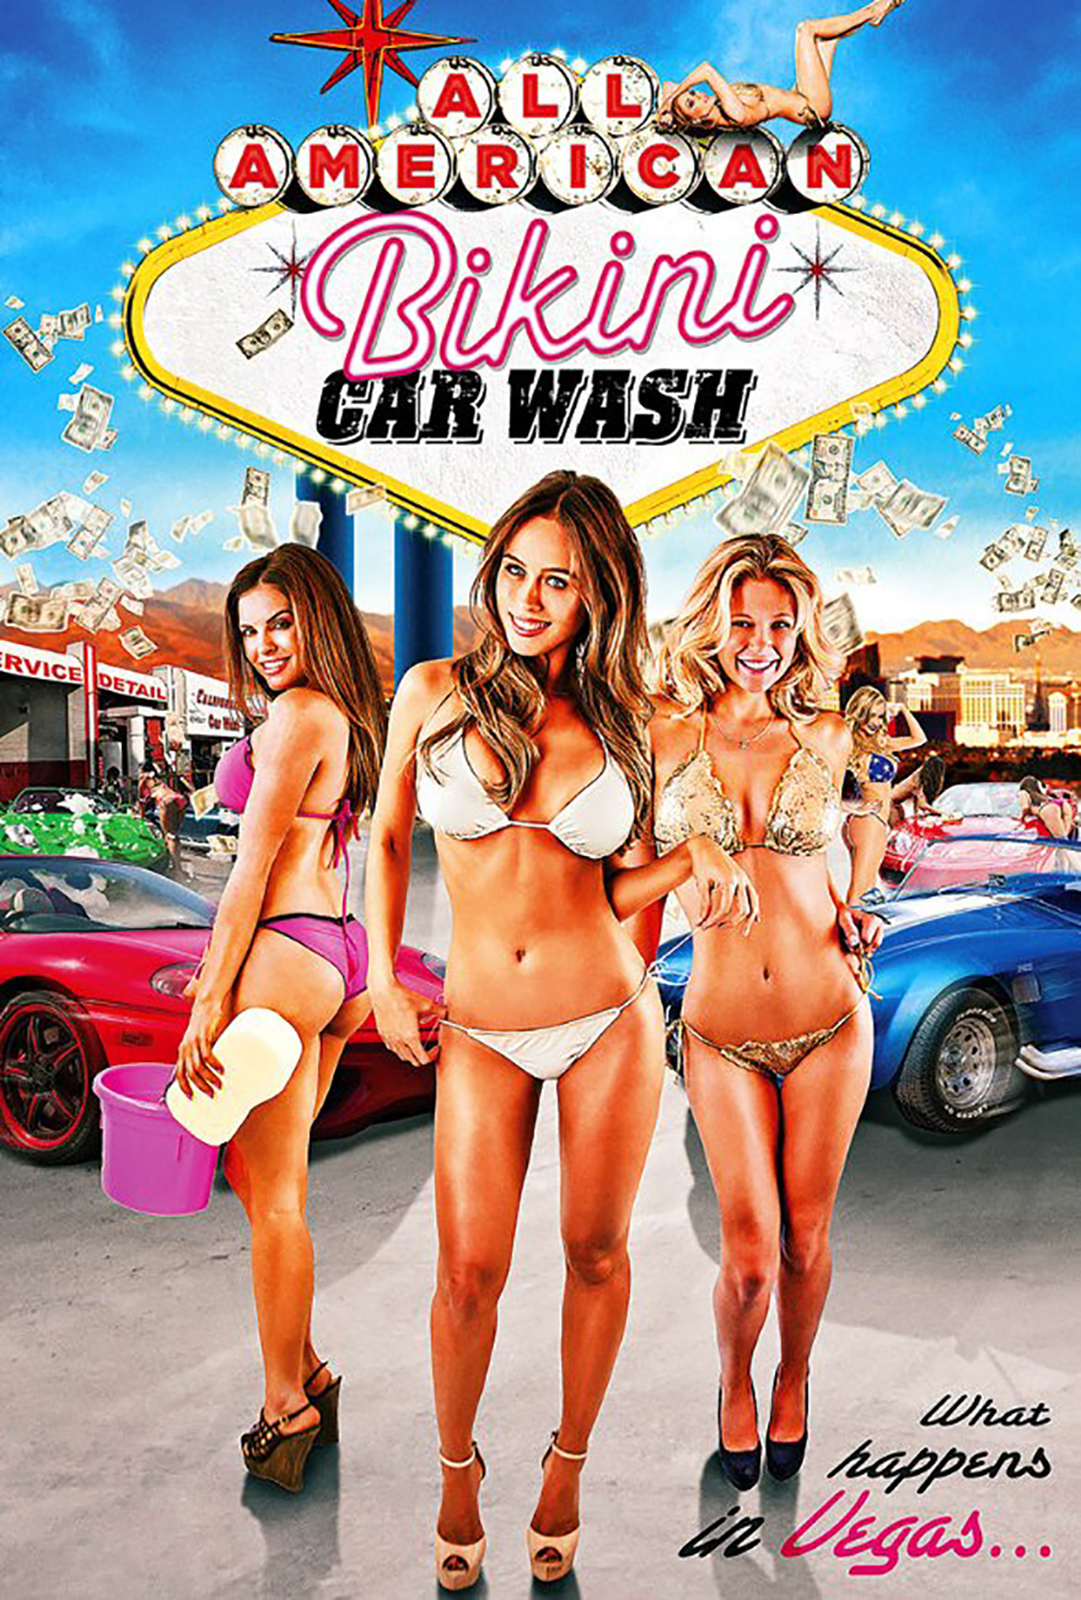 Bikini carwash streaming